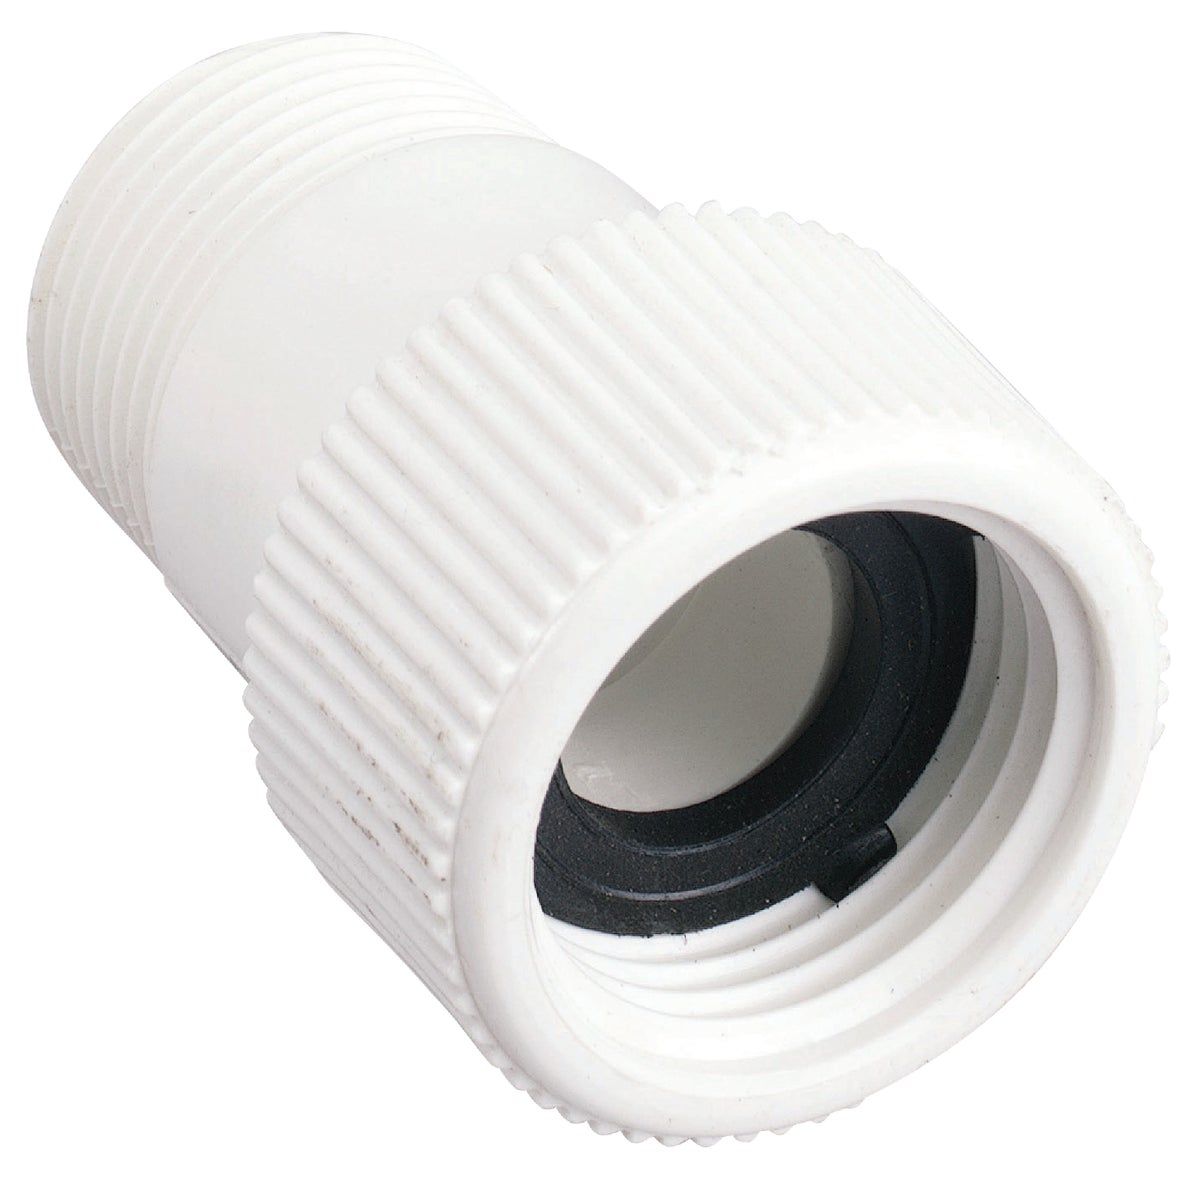 PVC HOSE COUPLING - 53364 by Orbit